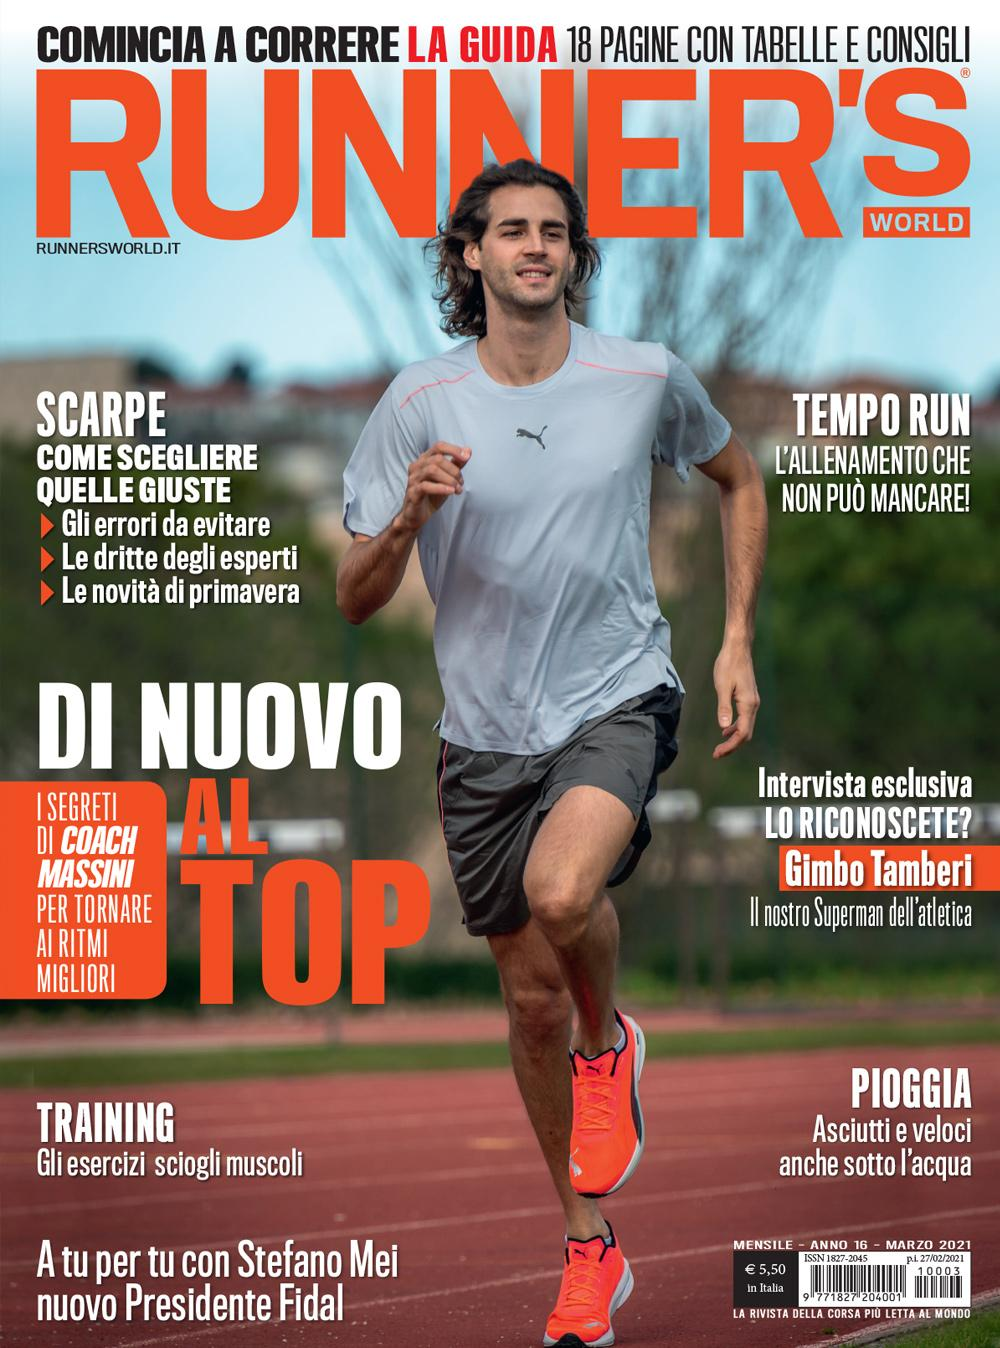 Runner's World di marzo 2021 è disponibile!